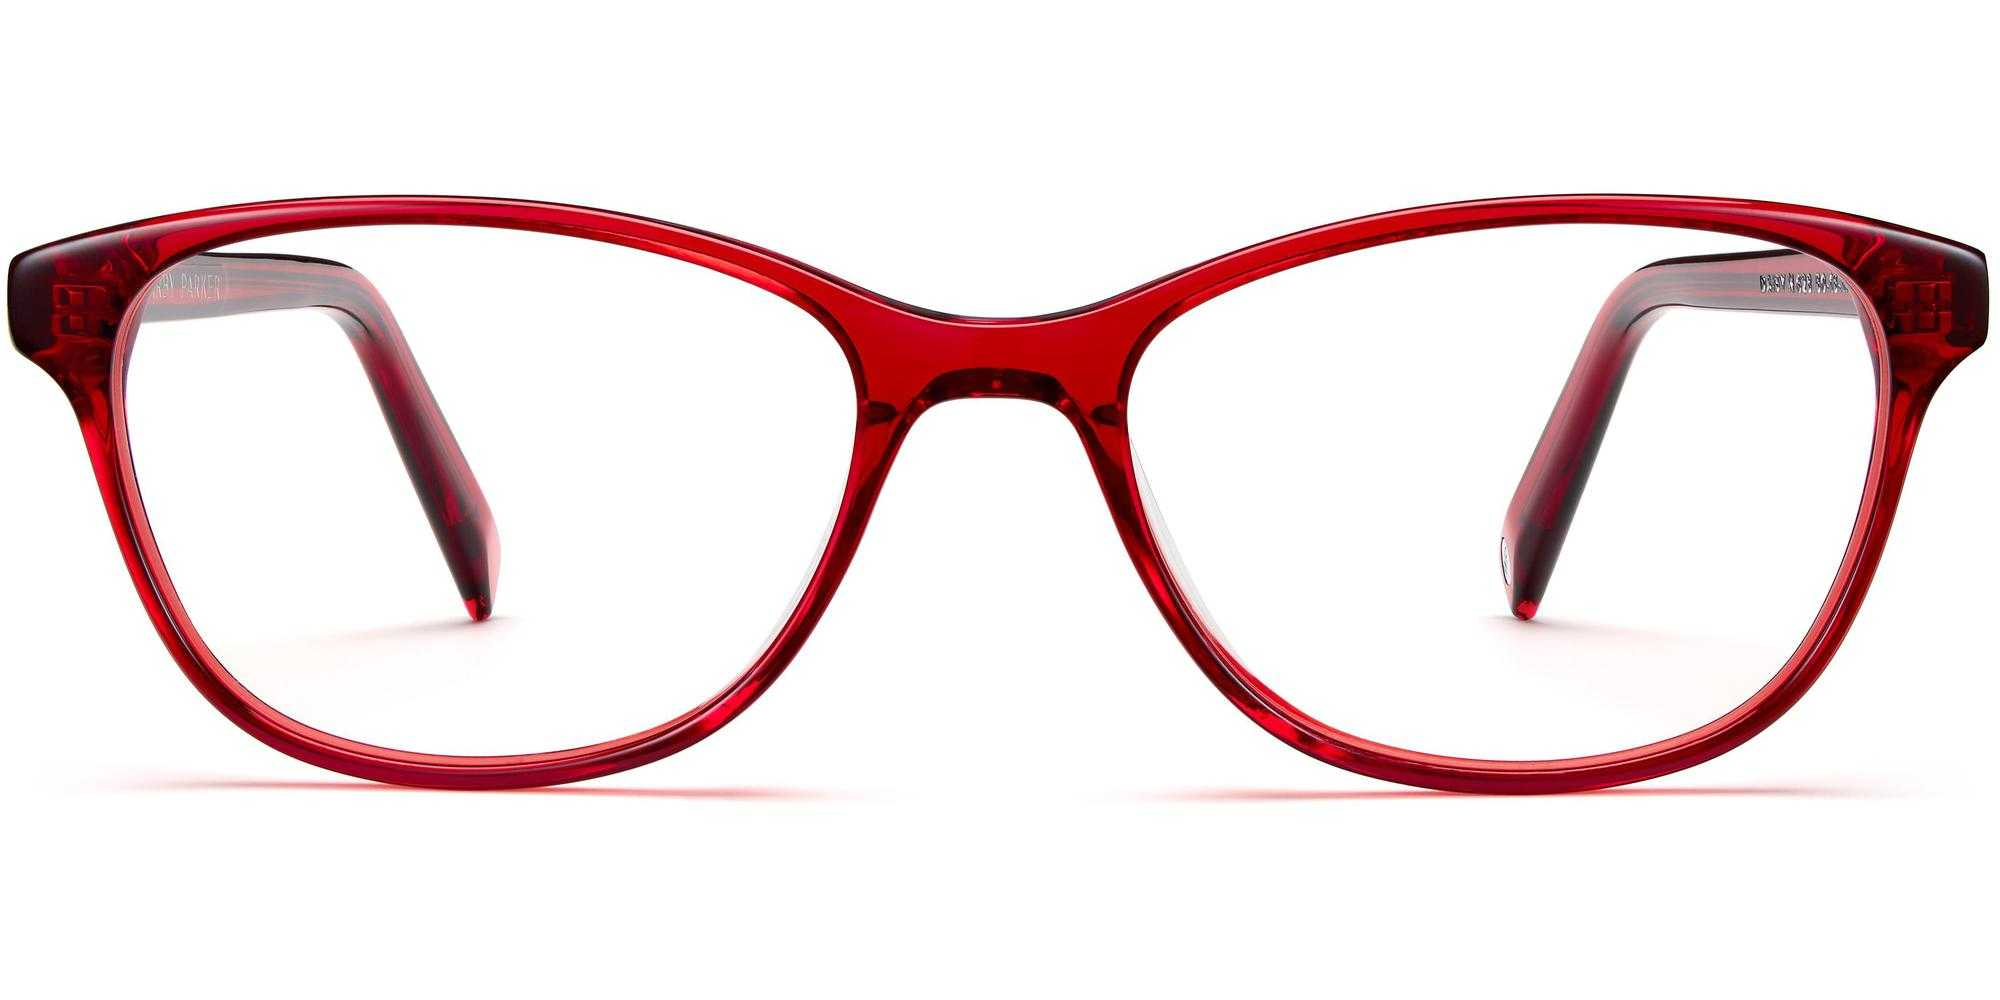 Front View Image of Daisy Eyeglasses Collection, by Warby Parker Brand, in Cardinal Crystal Color